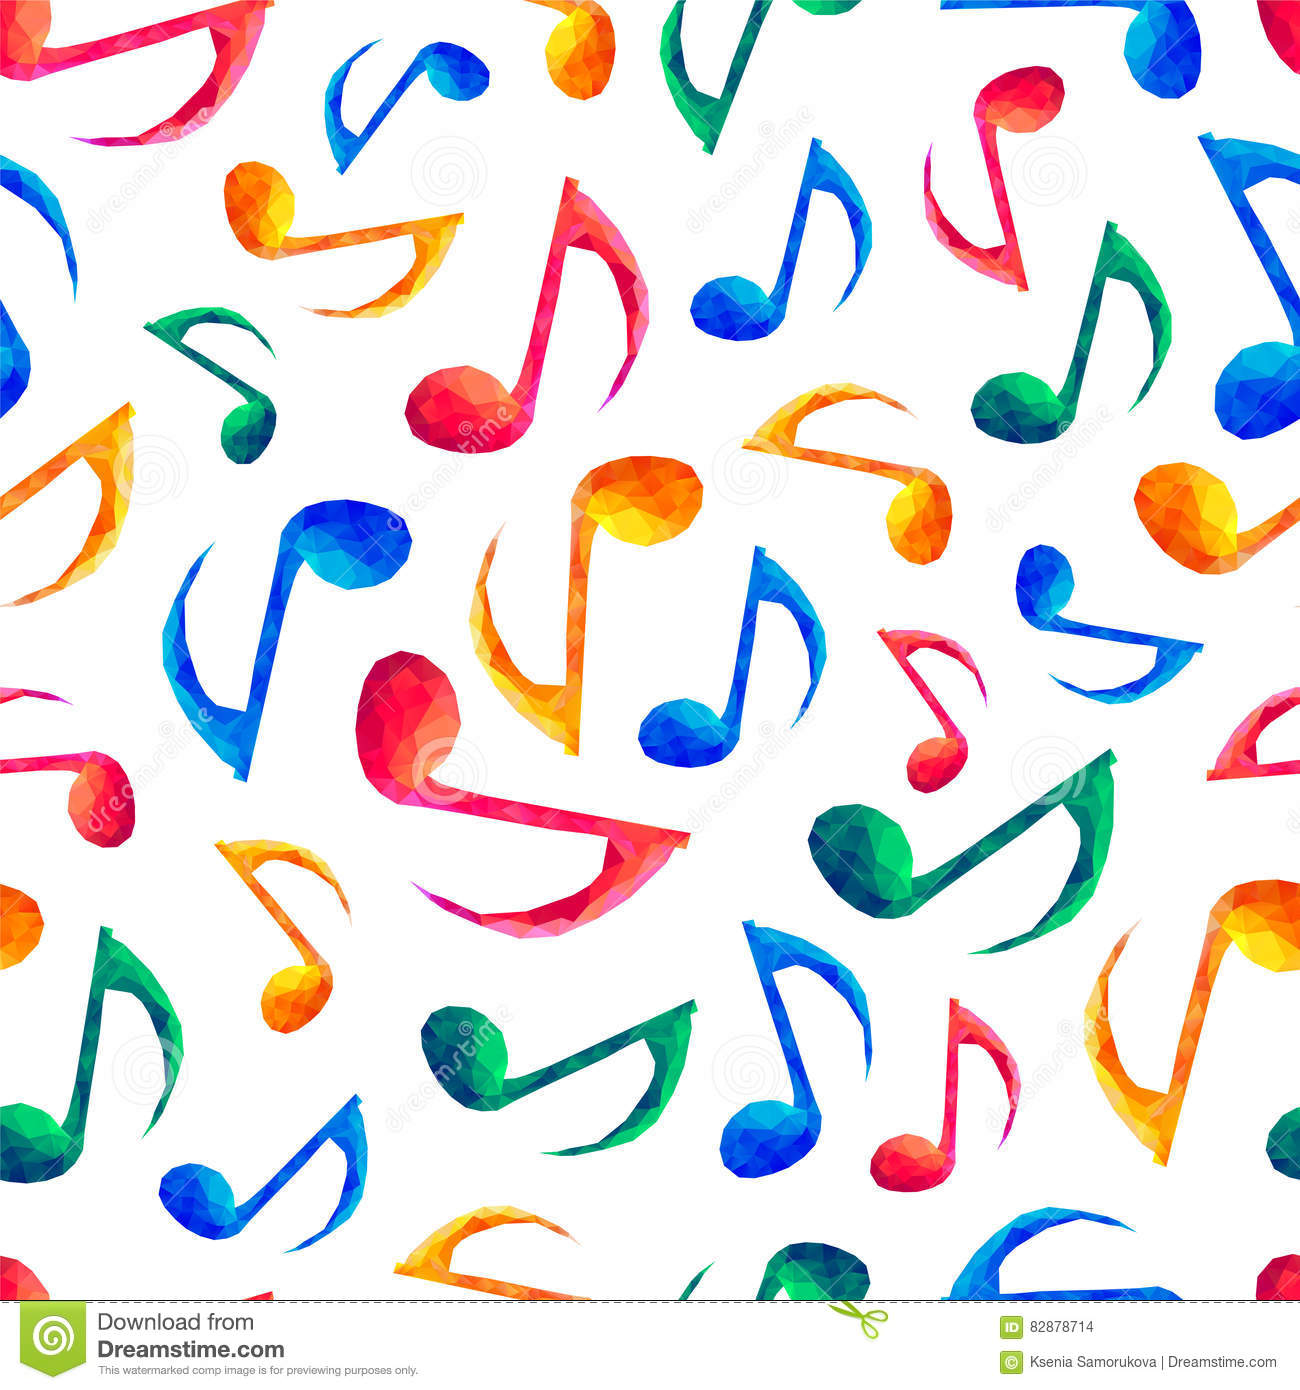 Seamless musical pattern - notes